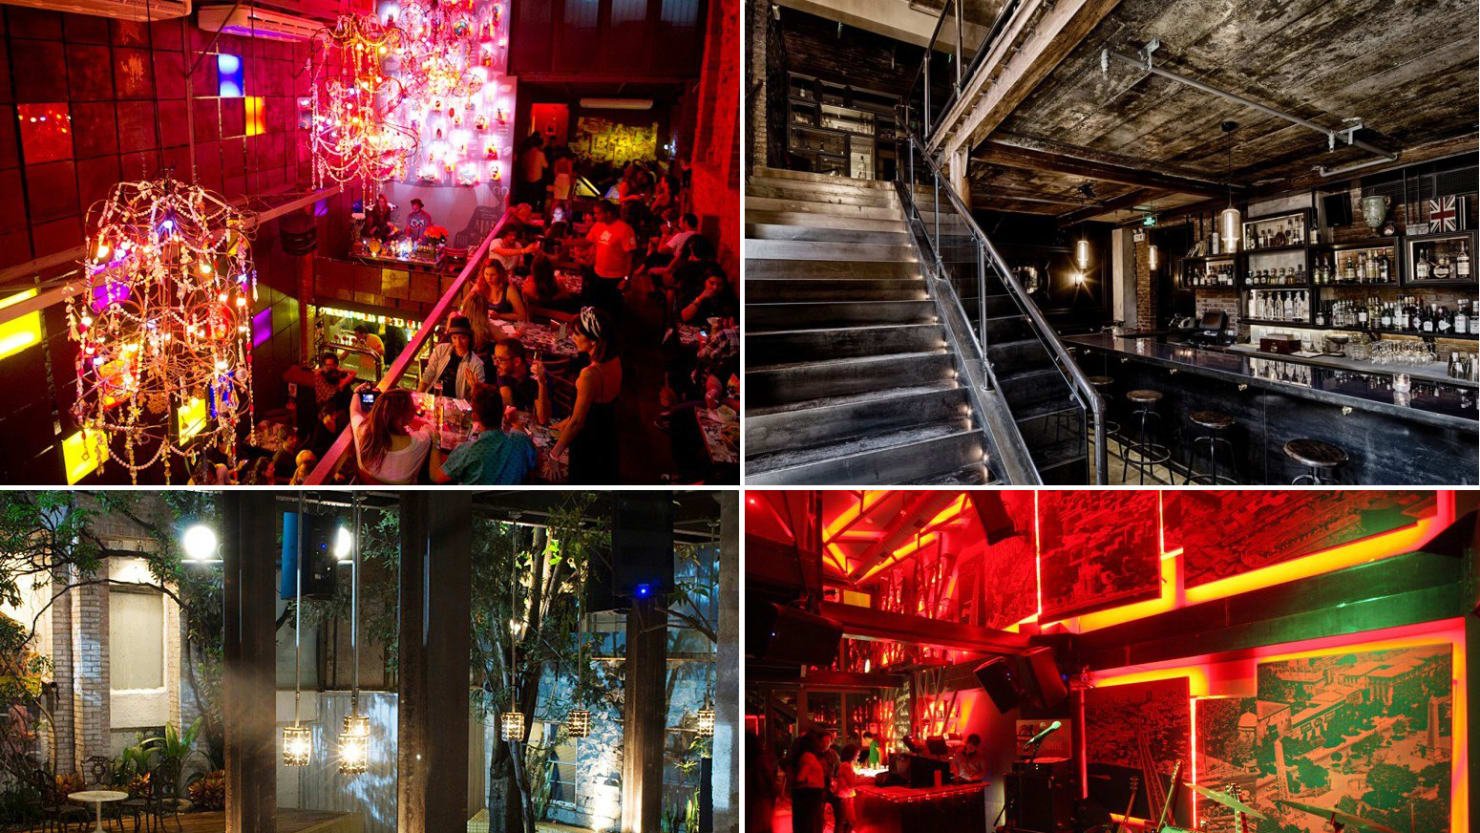 The 20 Best New Bars of 2013 (Photos)